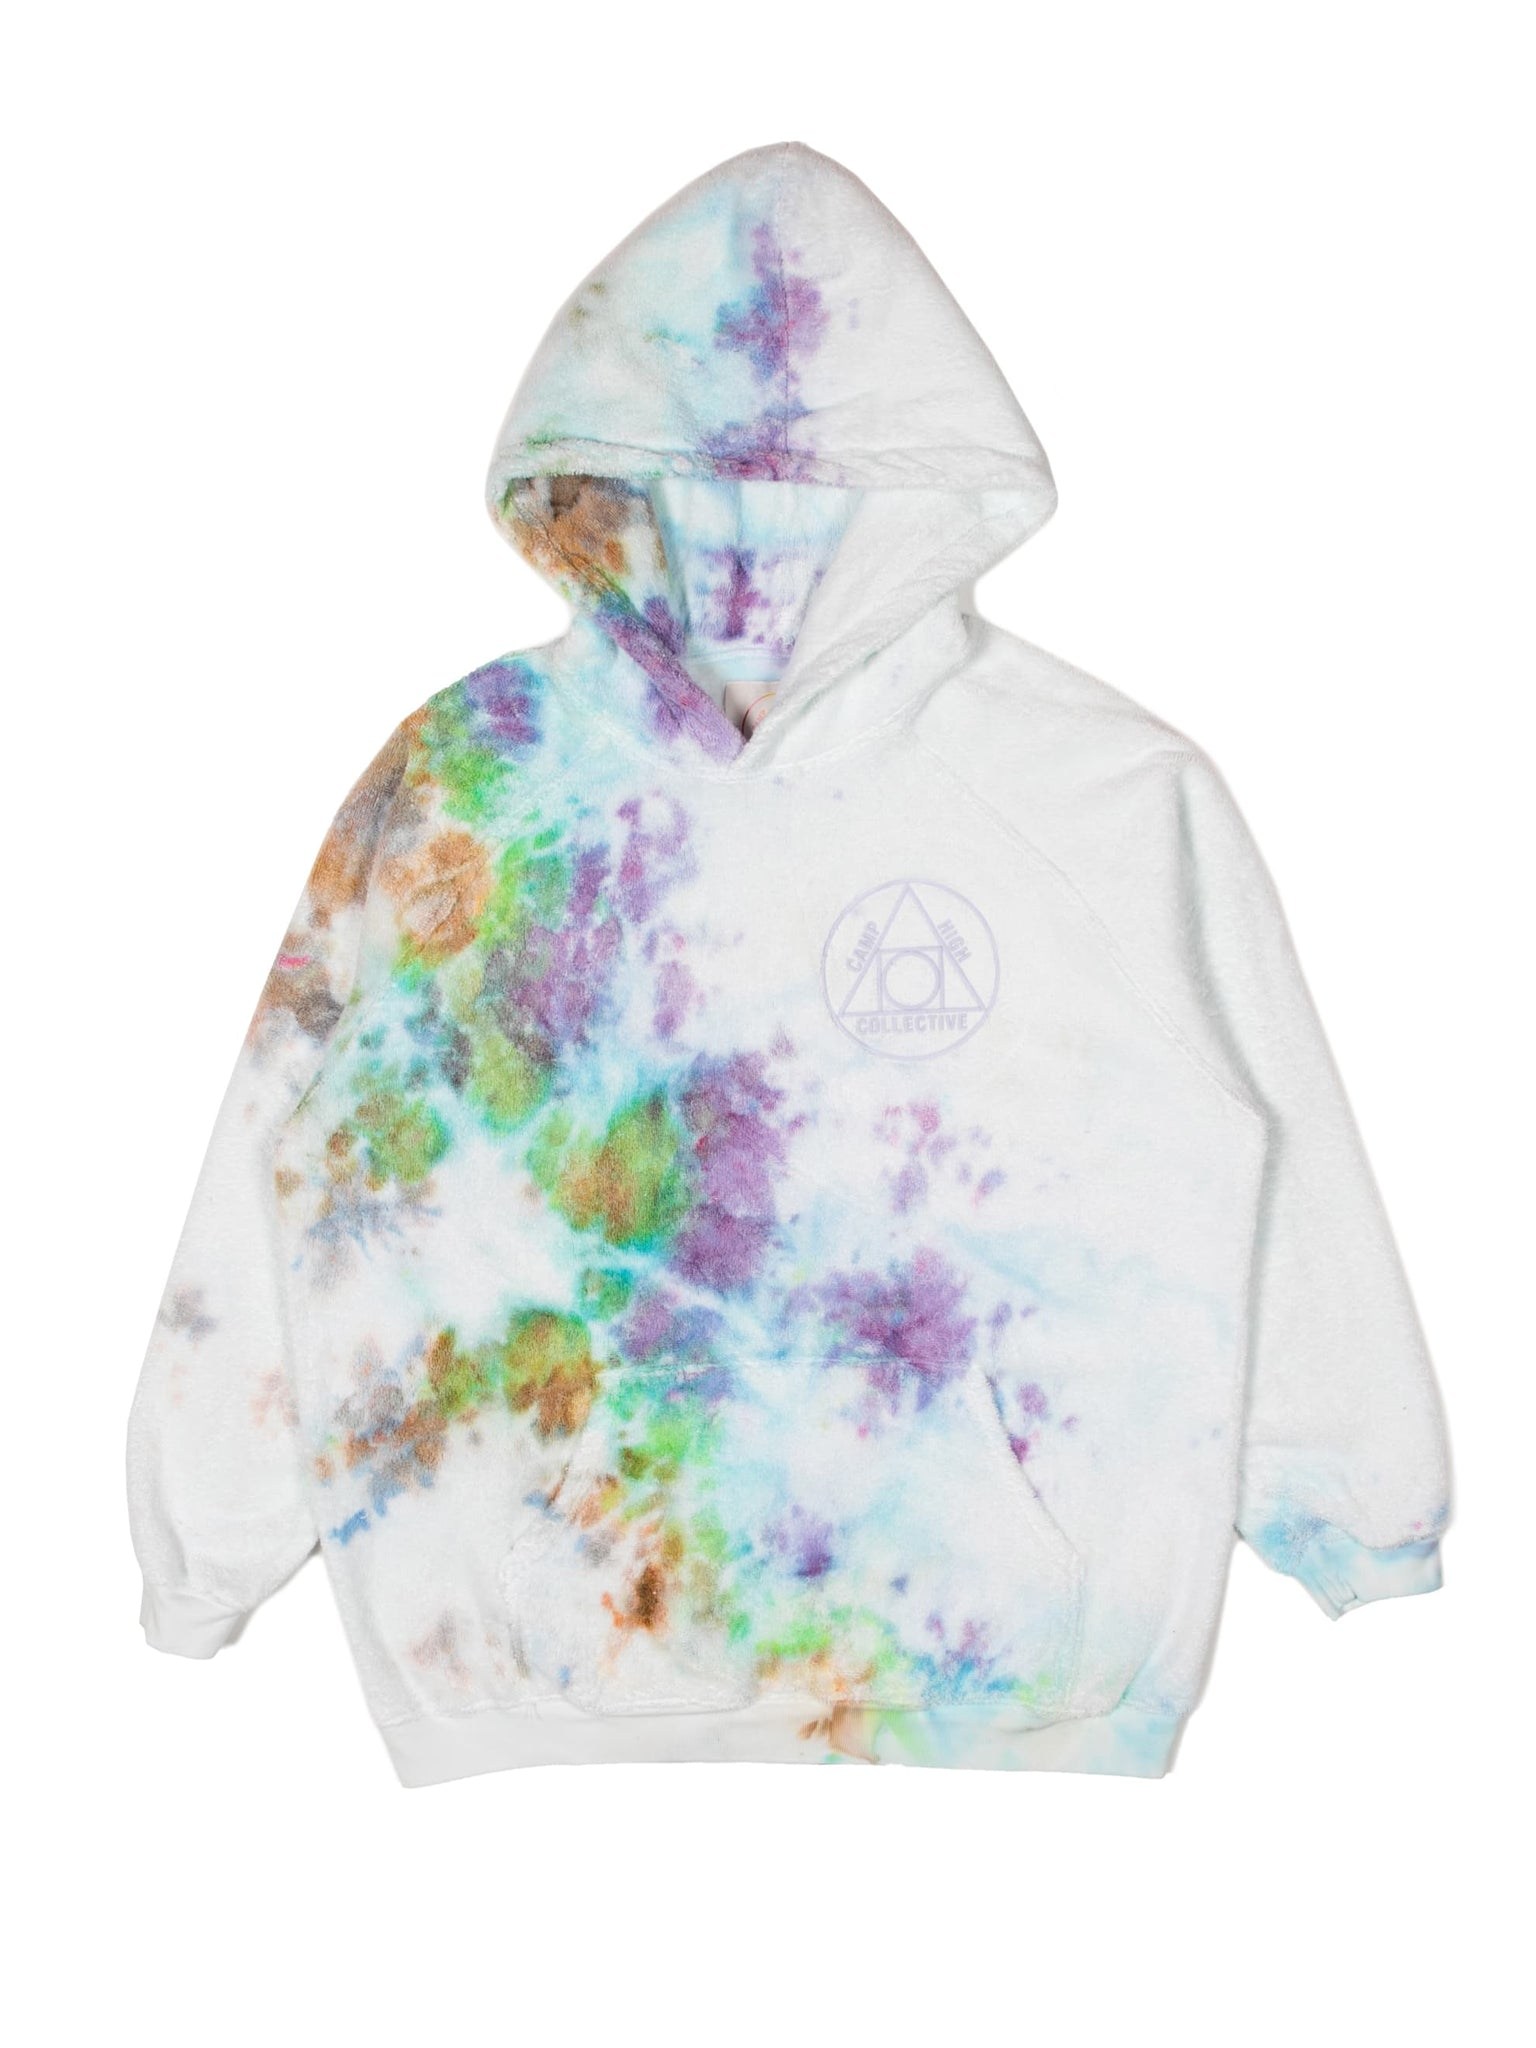 Camp High Transcendence Too Hoody